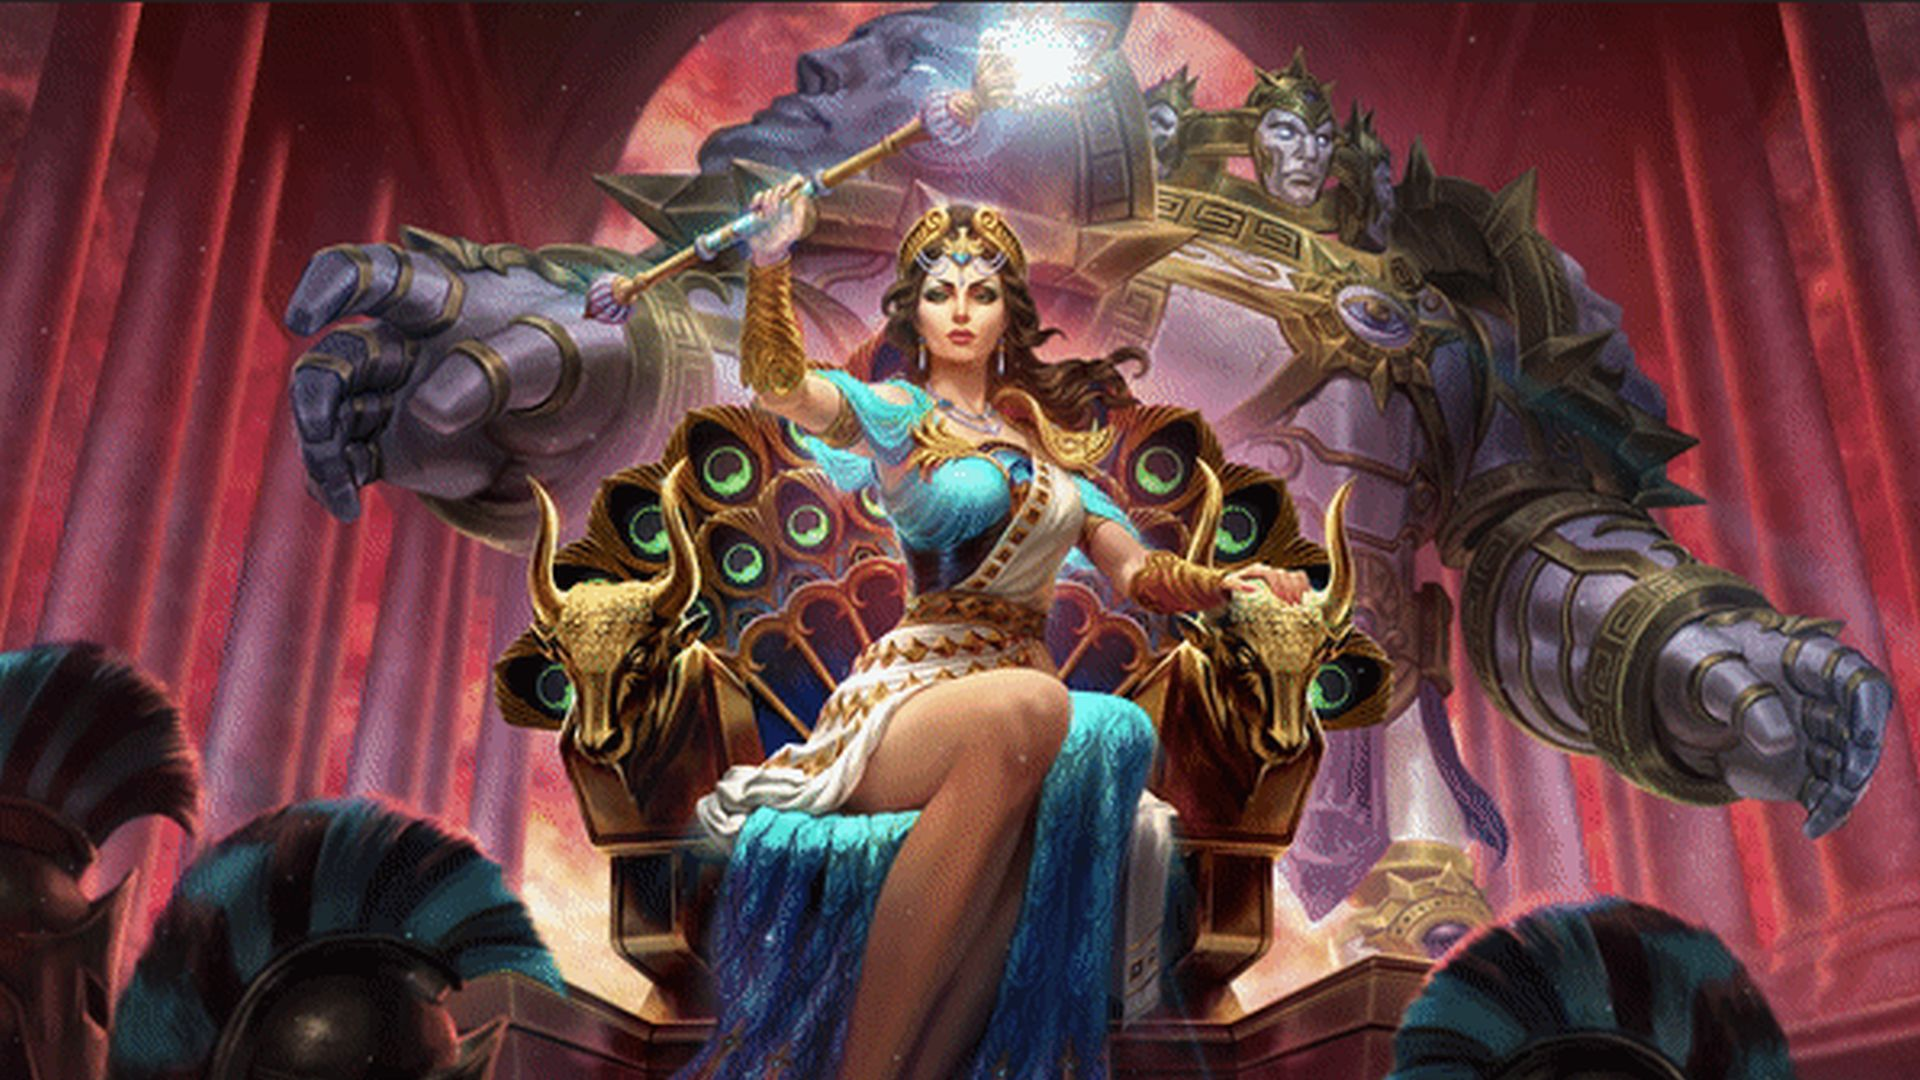 Hera Comes To Smite And She Can Turn You Into A Peacock